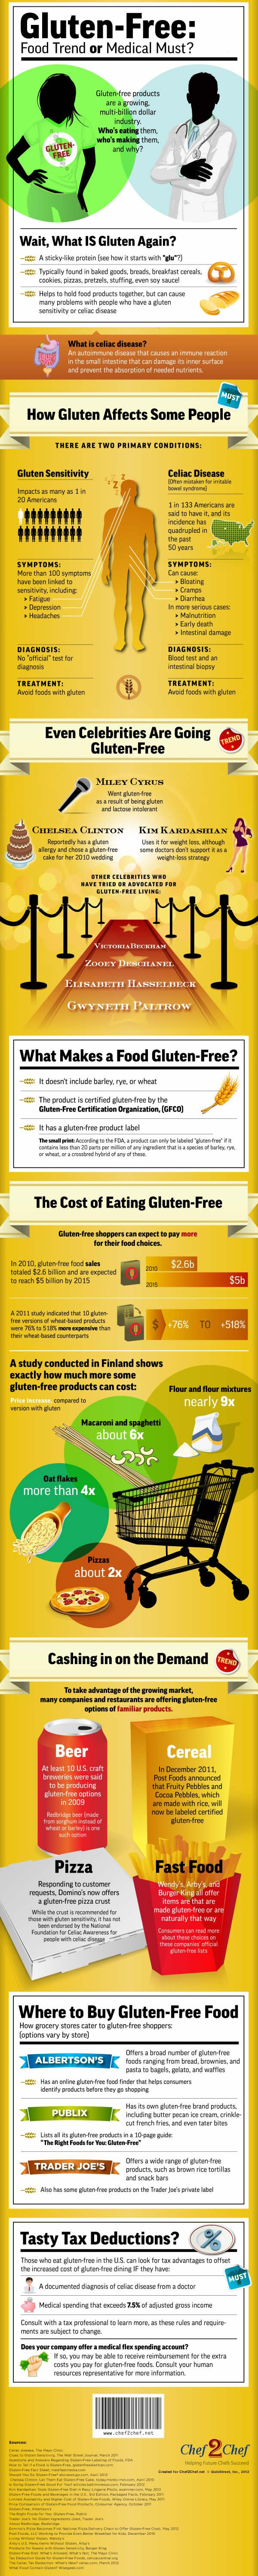 Gluten-Free: Food Trend or Medical Must? Unless you're diagnosed BY A PHYSICIAN with Celiac Disease or gluten sensitivity/intolerance, you're likely doing more harm than good for both your body and your bank account. Do your research, people.